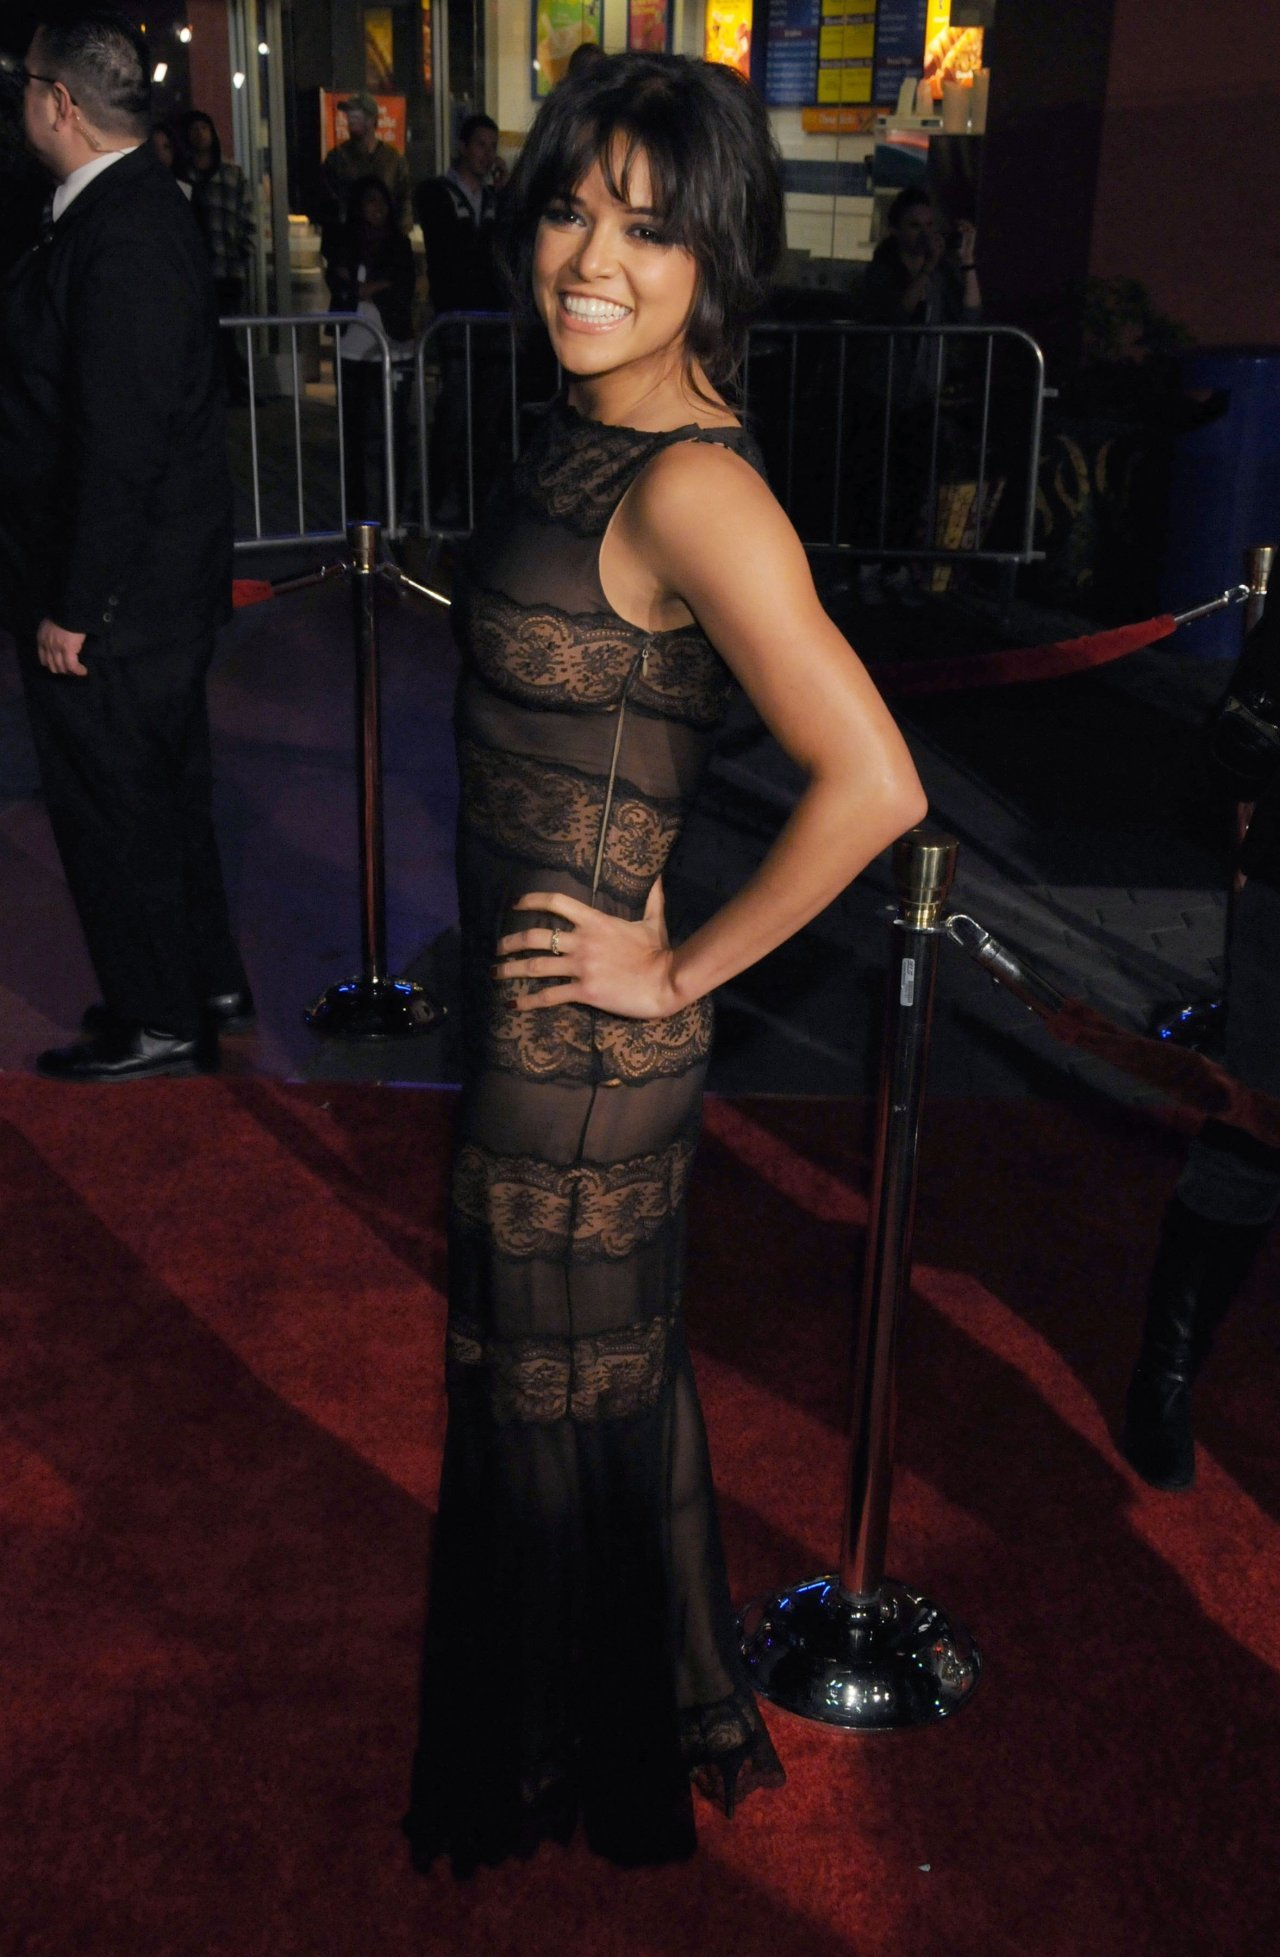 Michelle Rodriguez Nude Photos and Videos   #TheFappening